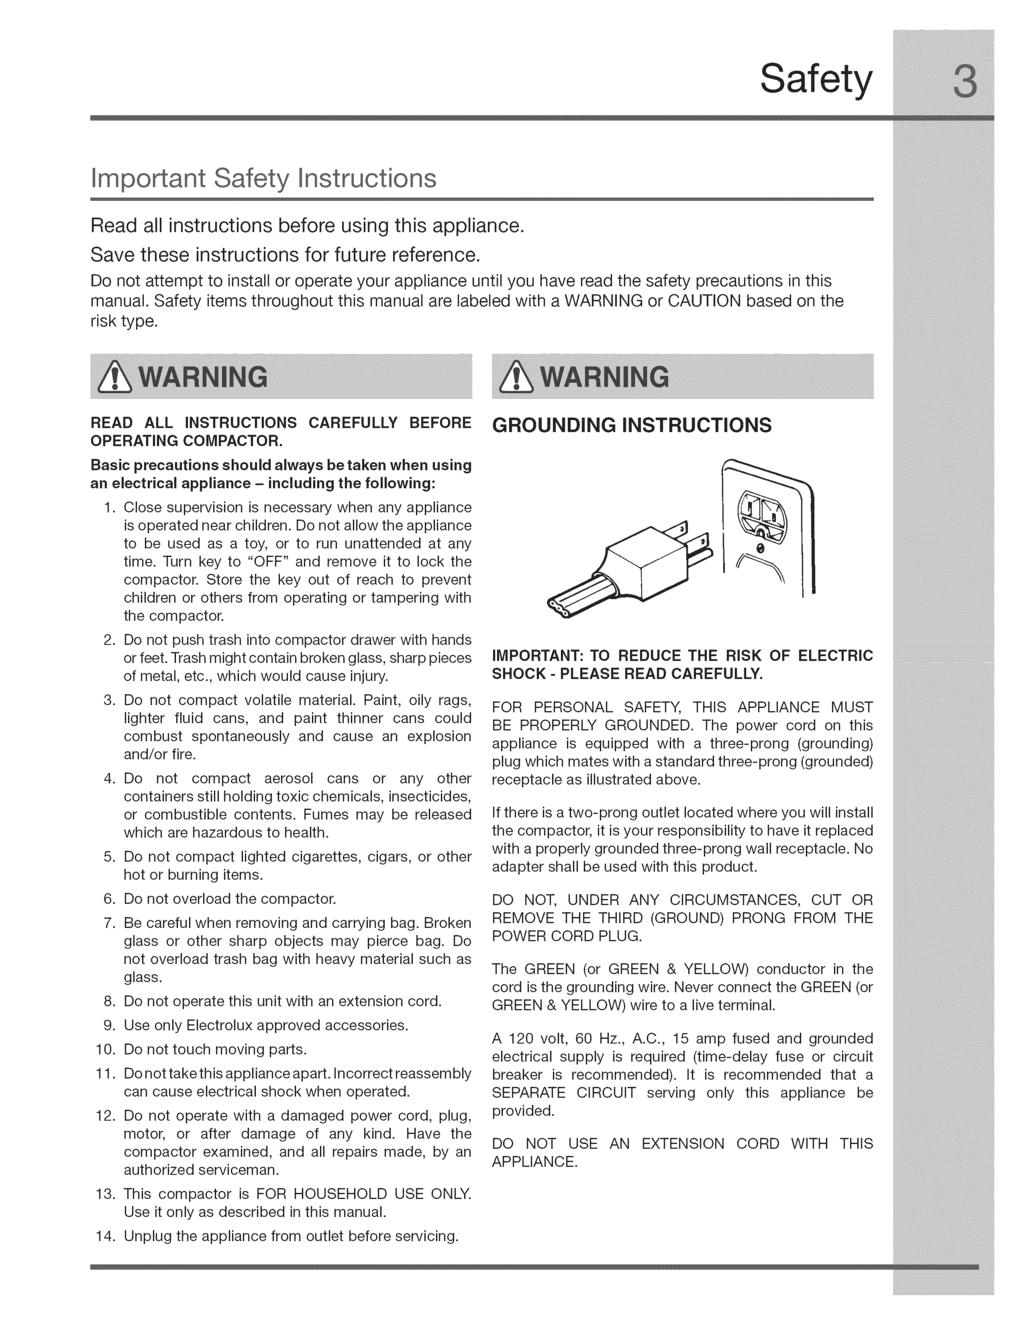 Safety Important Safety Instructions Read all instructions before using this appliance. Save these instructions for future reference.